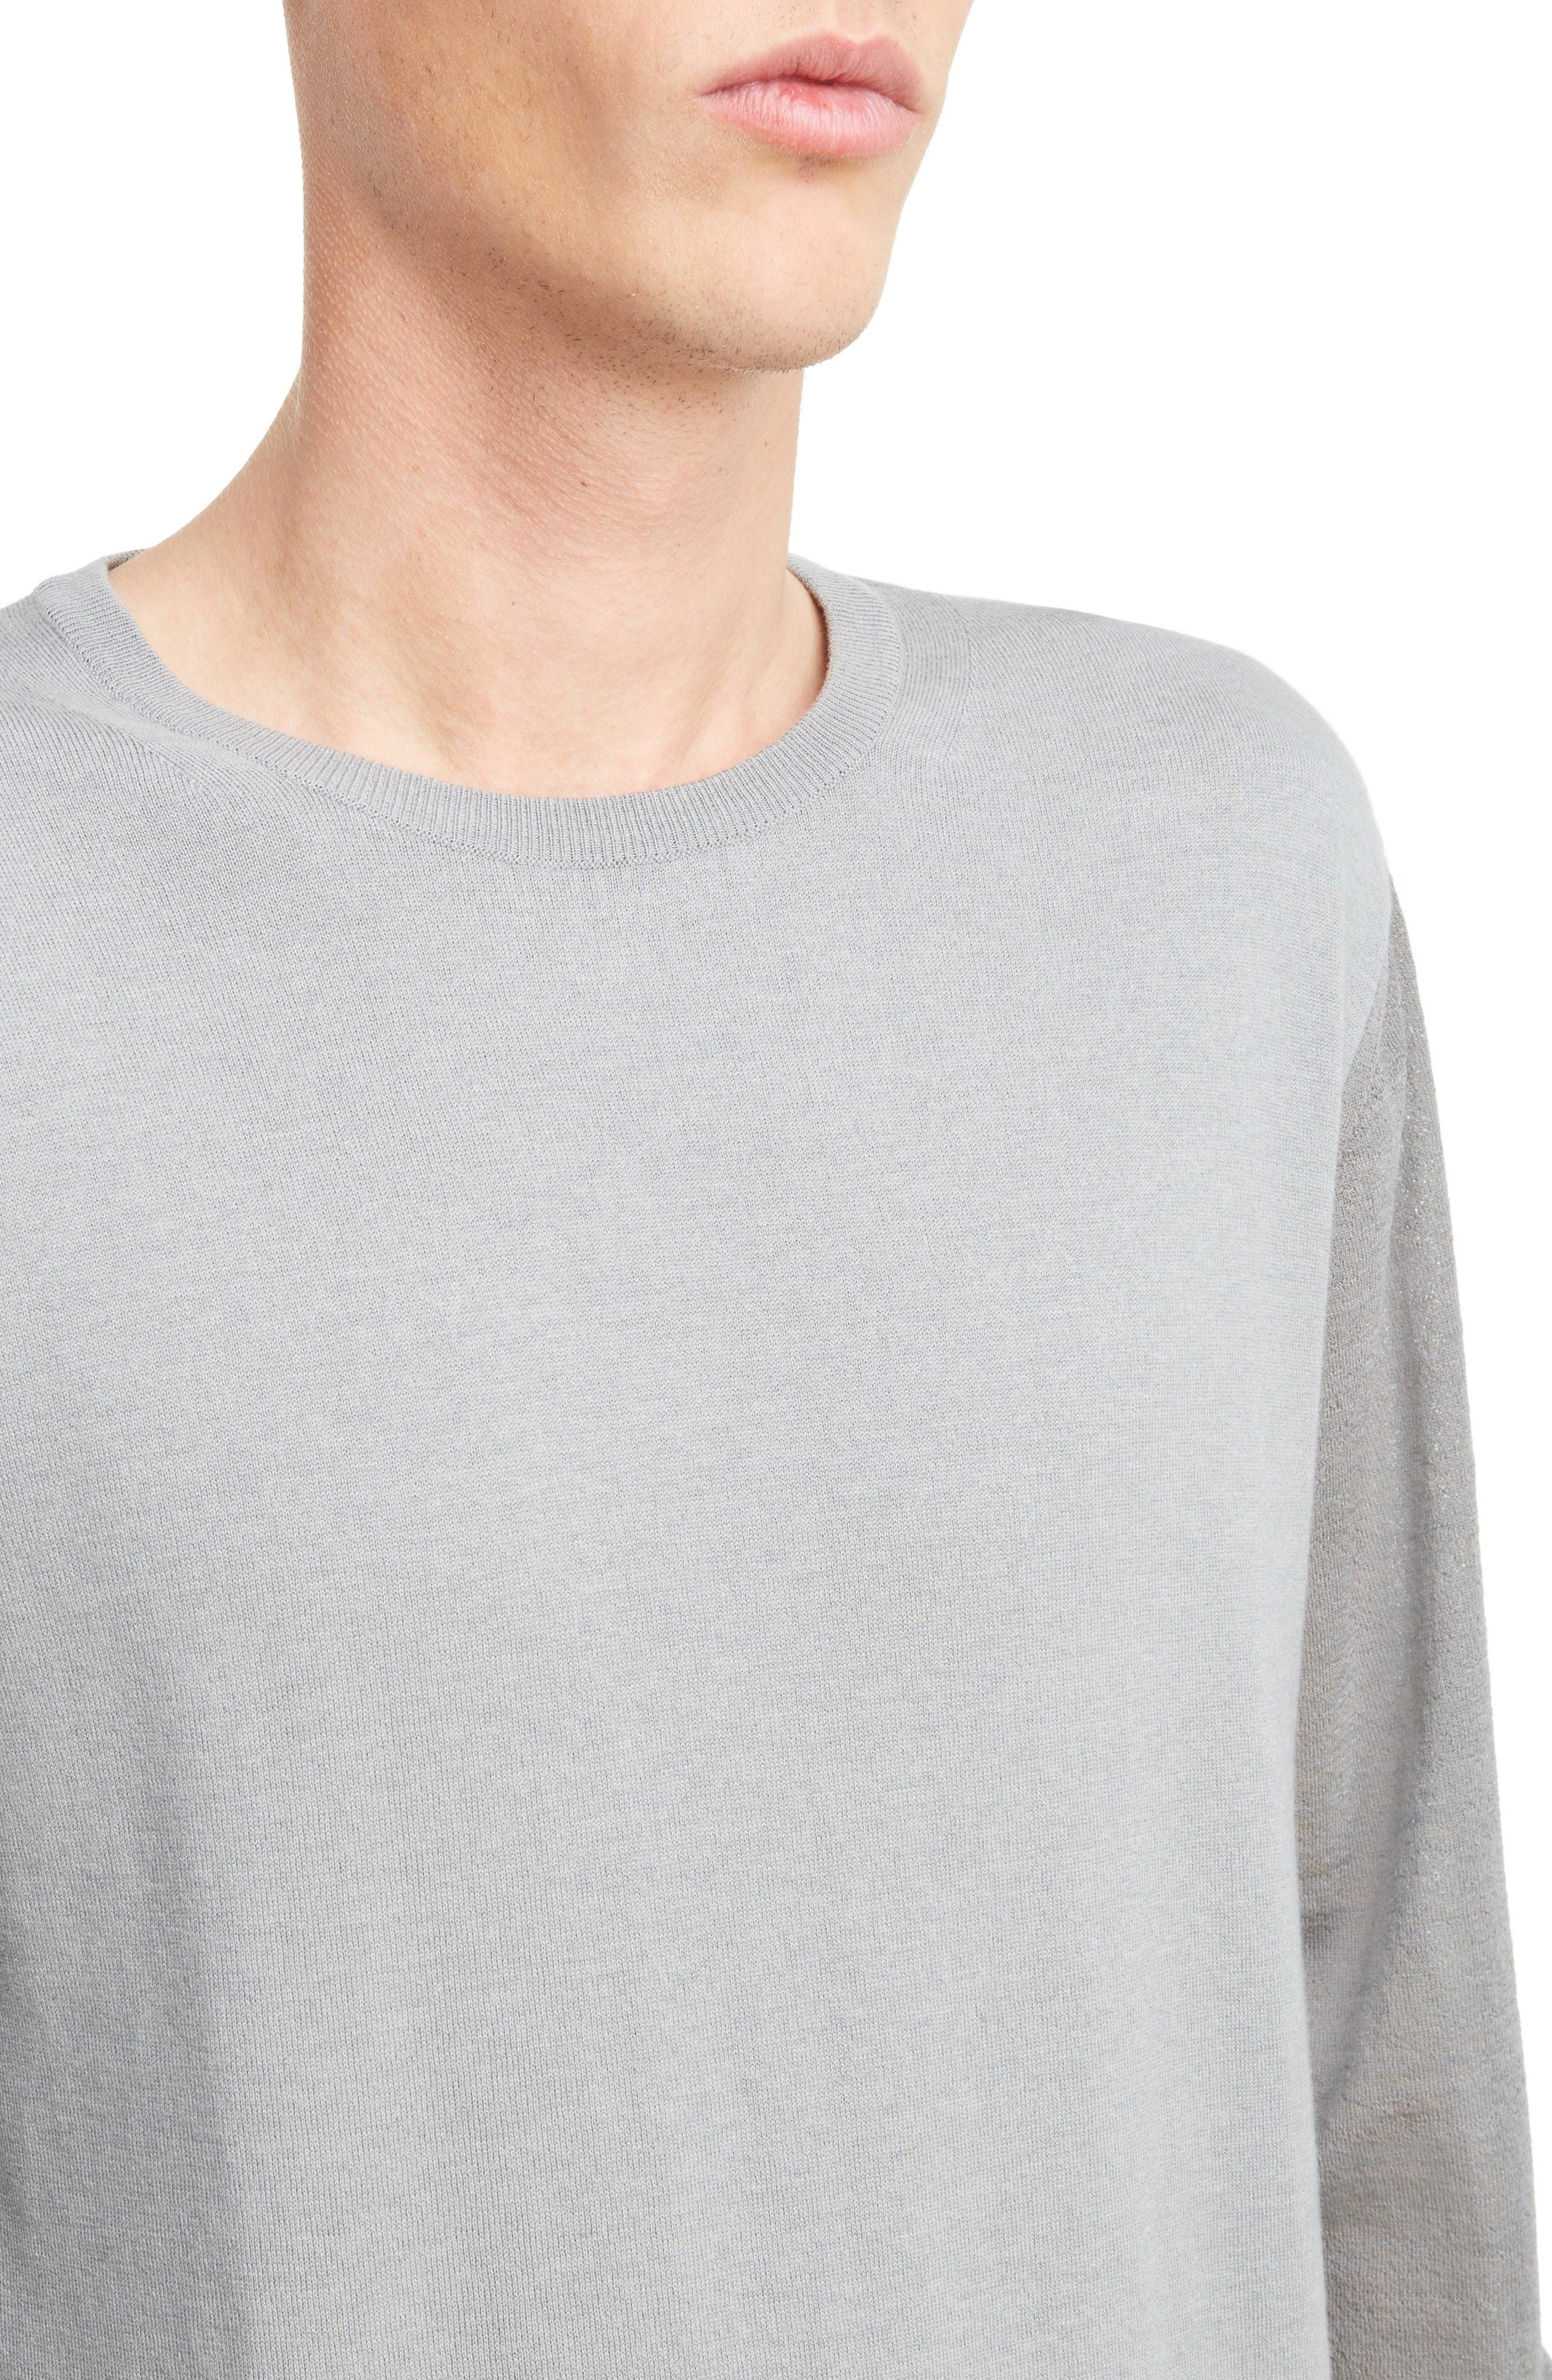 Cotton & Wool Colorblock Pullover,                             Alternate thumbnail 4, color,                             Light Grey